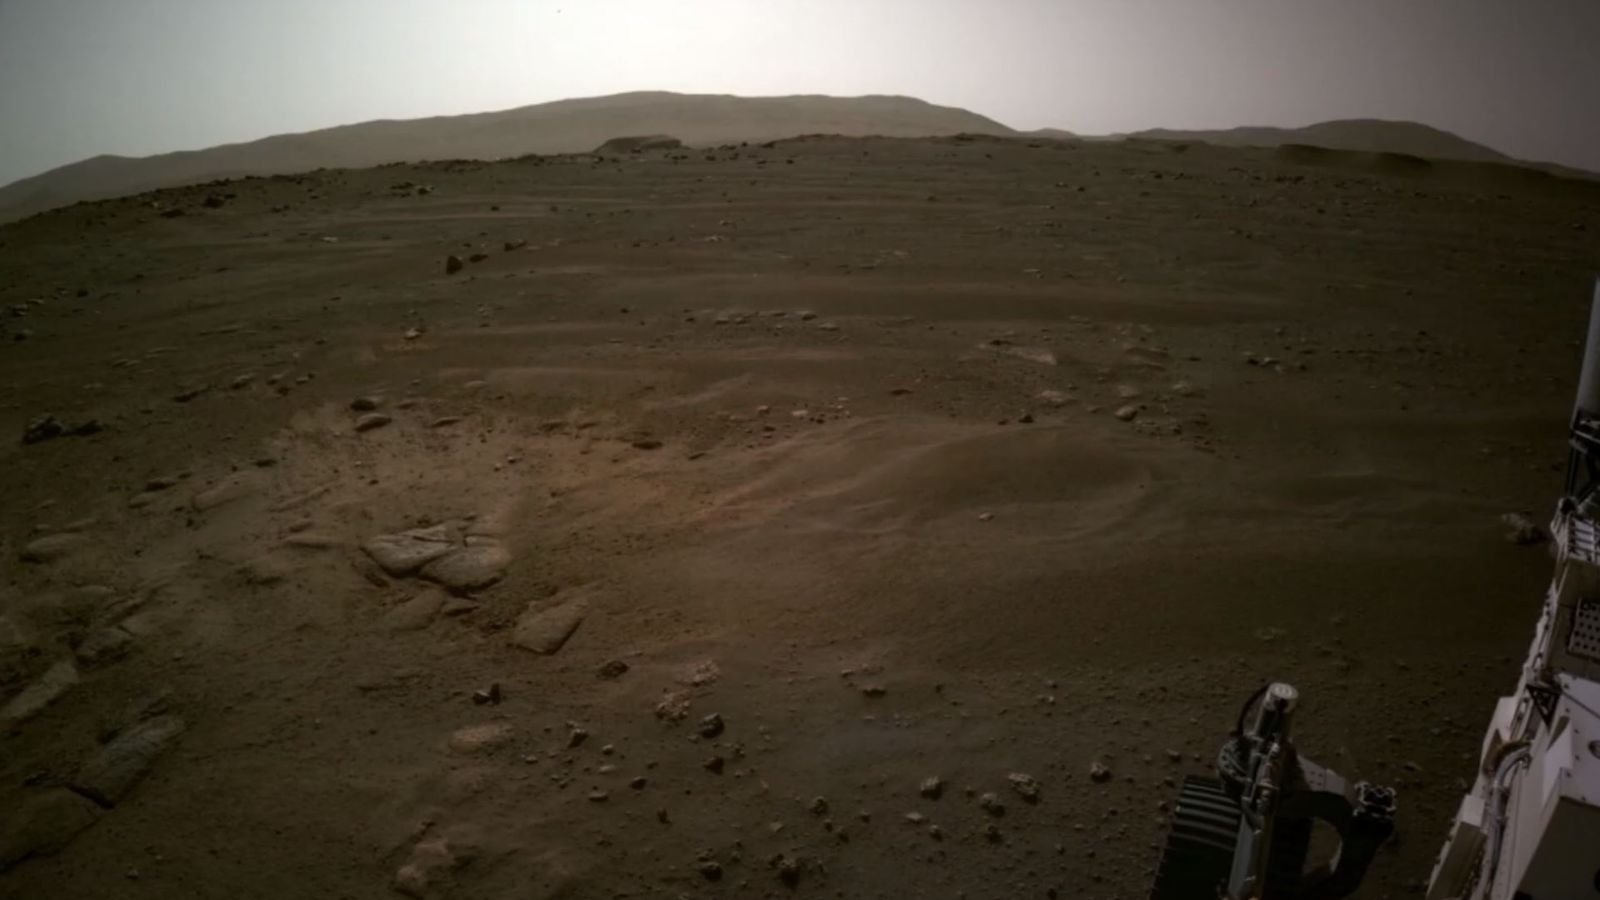 Mars touchdown: NASA releases new photos captured by the Perseverance rover